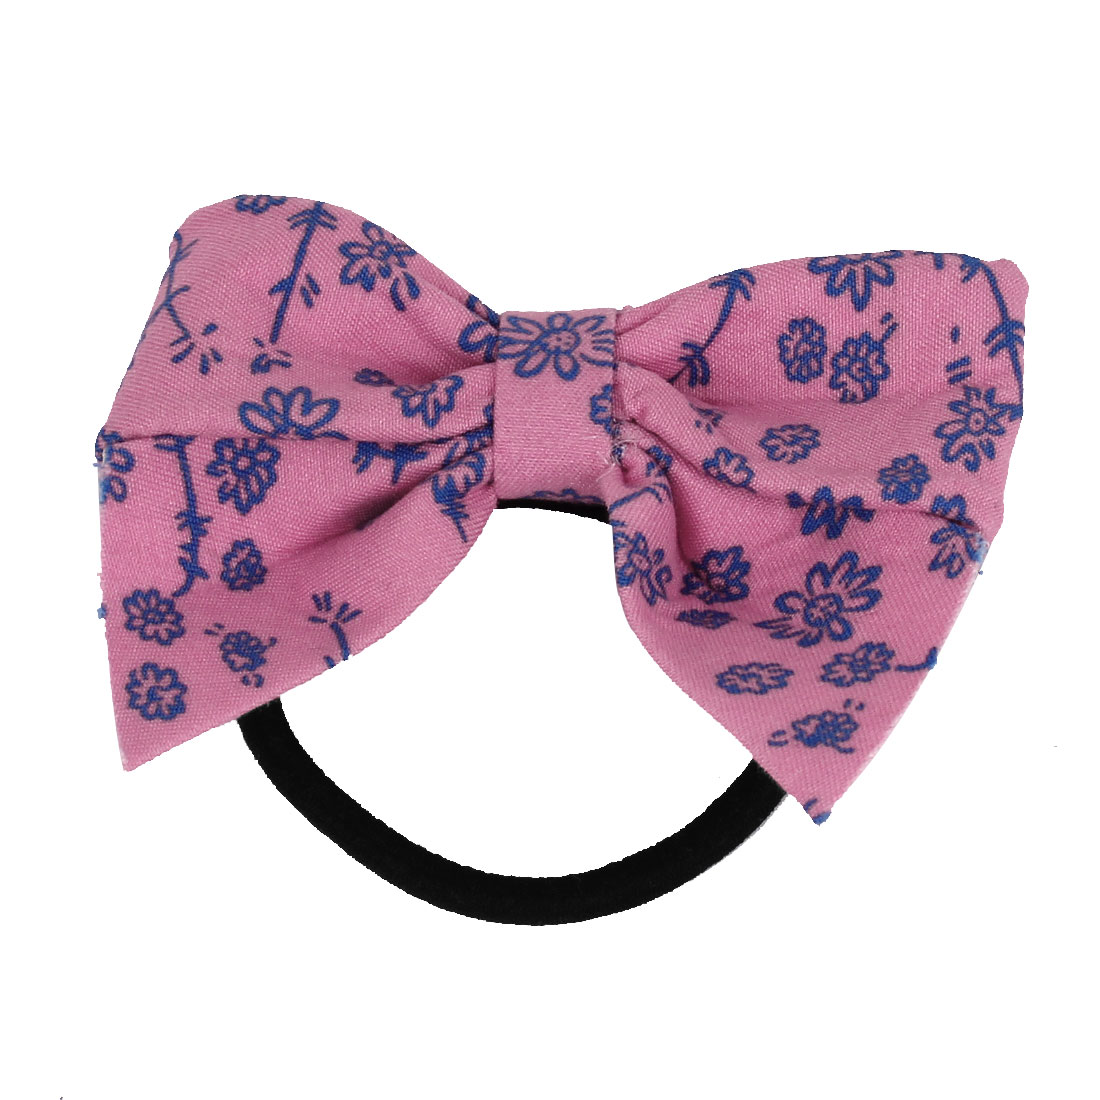 Pink Bowknot Decoration Black Elastic Band Hair Tie Ponytail Holder for Girl